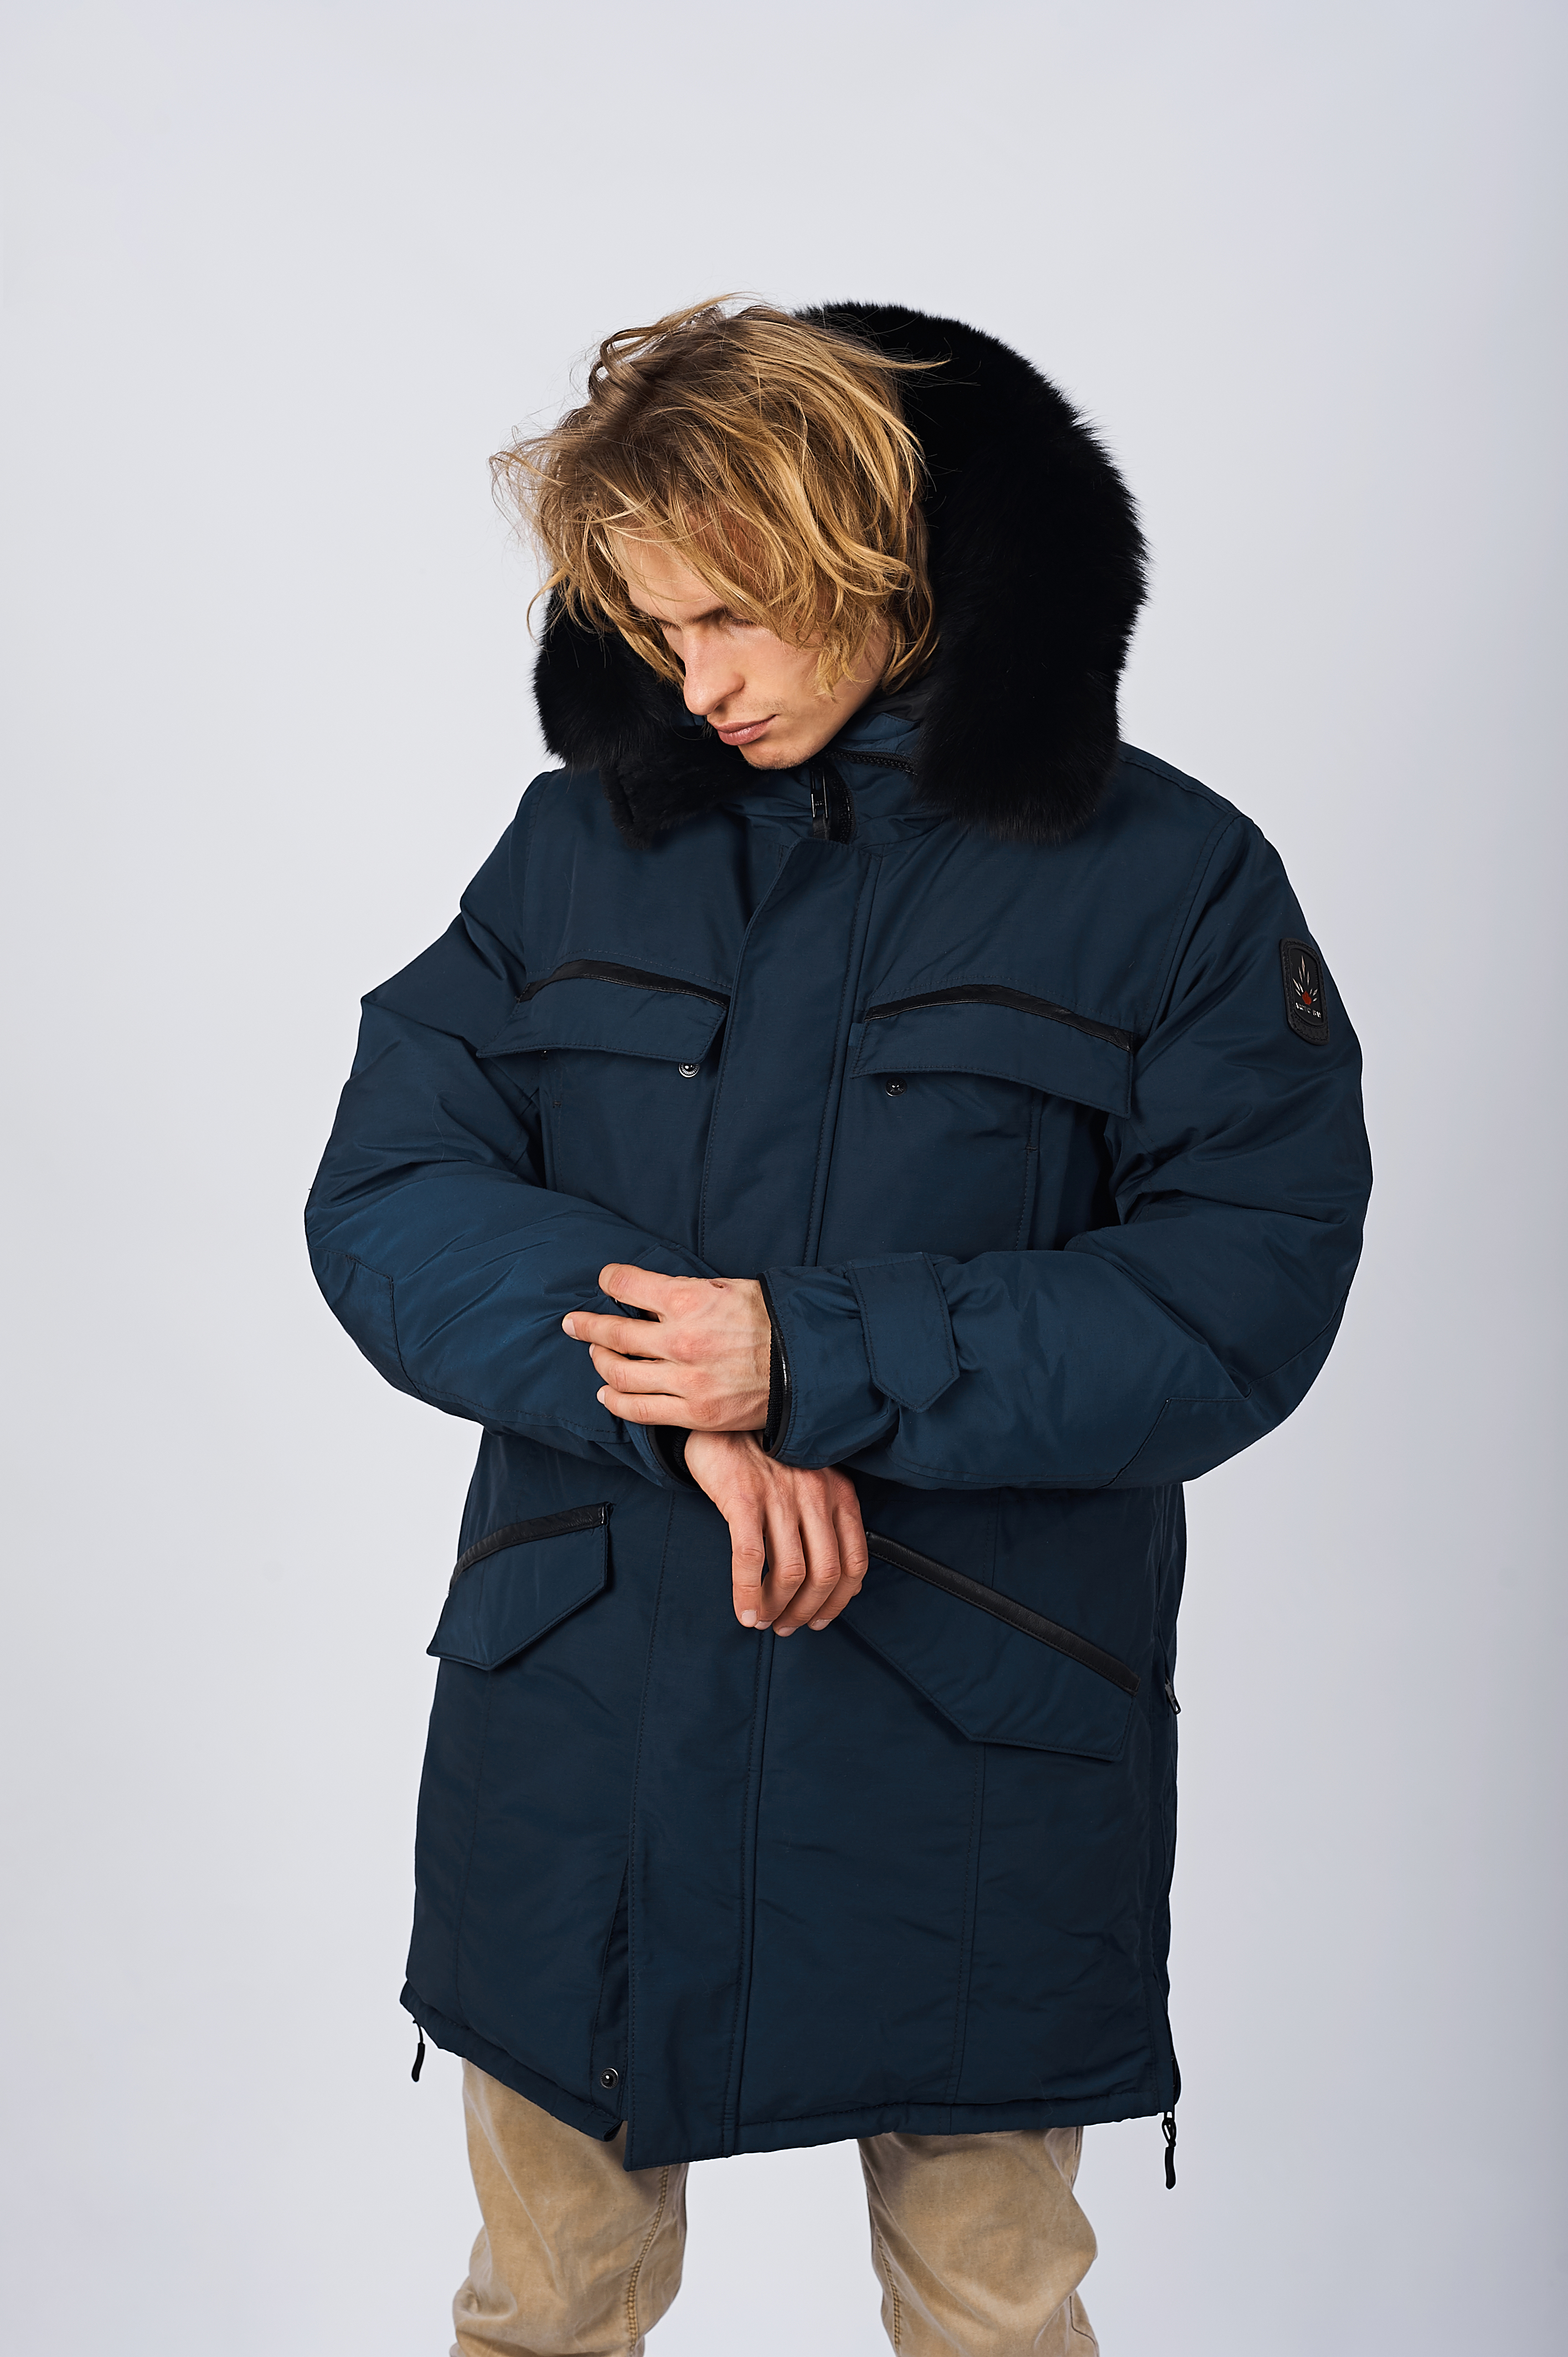 Making an Investment in Luxury Winter Jackets for Men